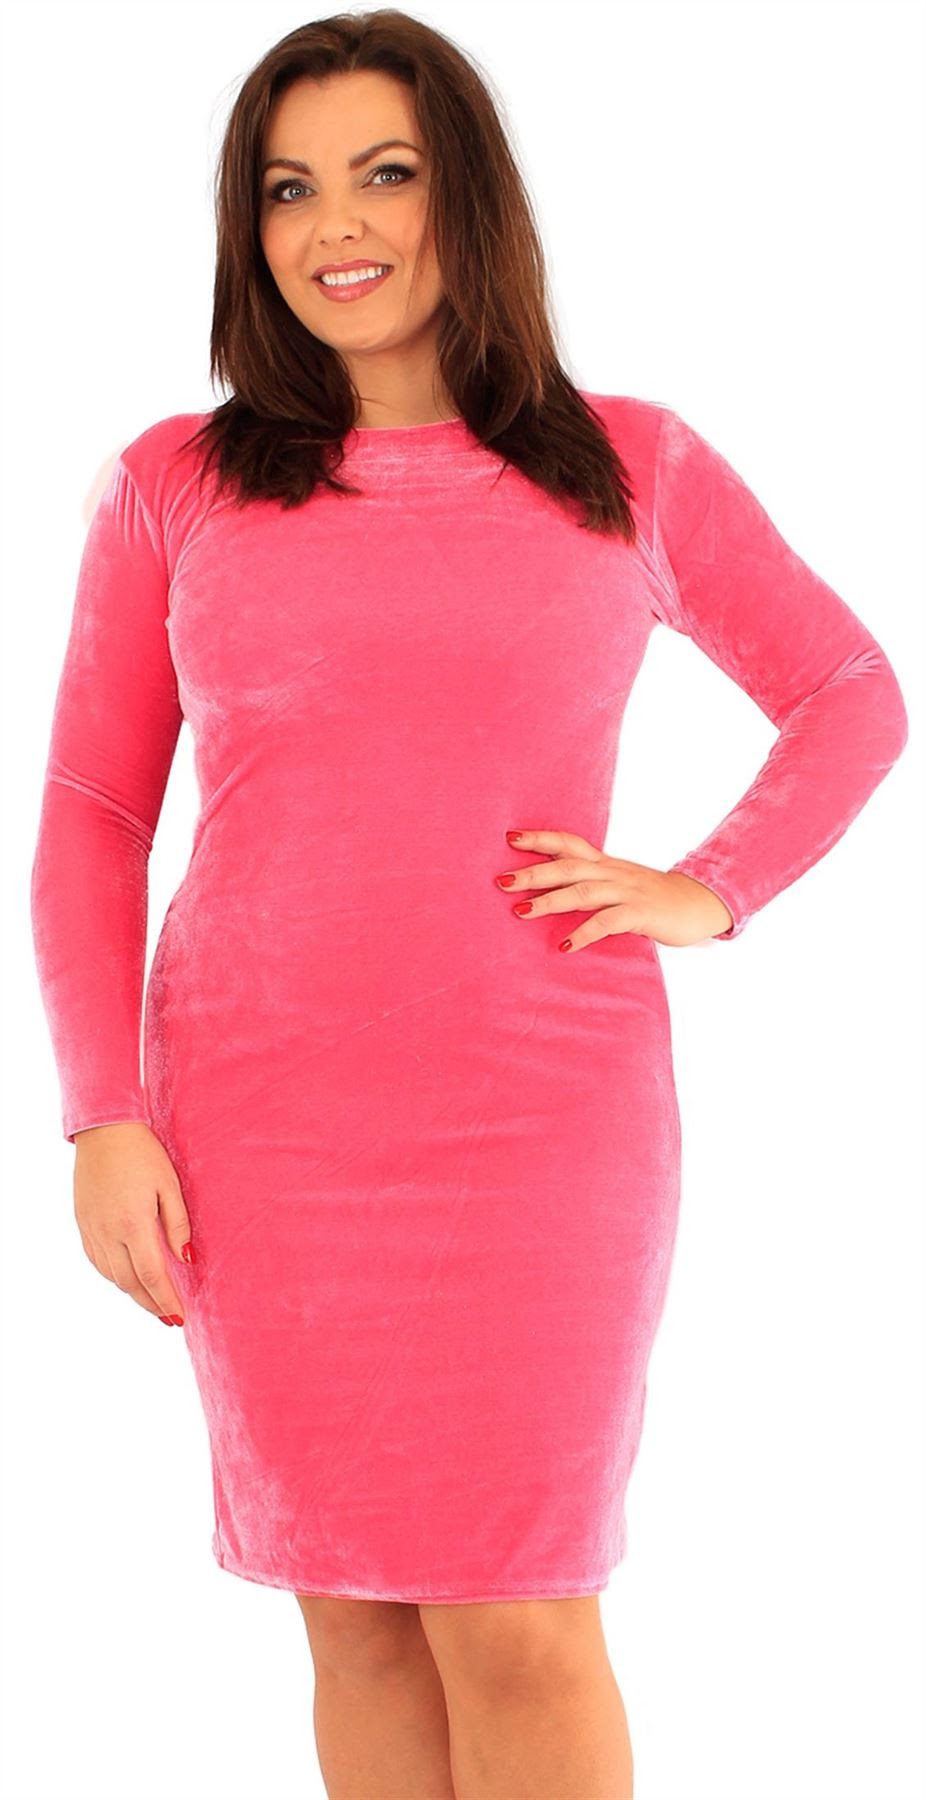 Ebay plus long bodycon dresses womens sleeve size south africa plus